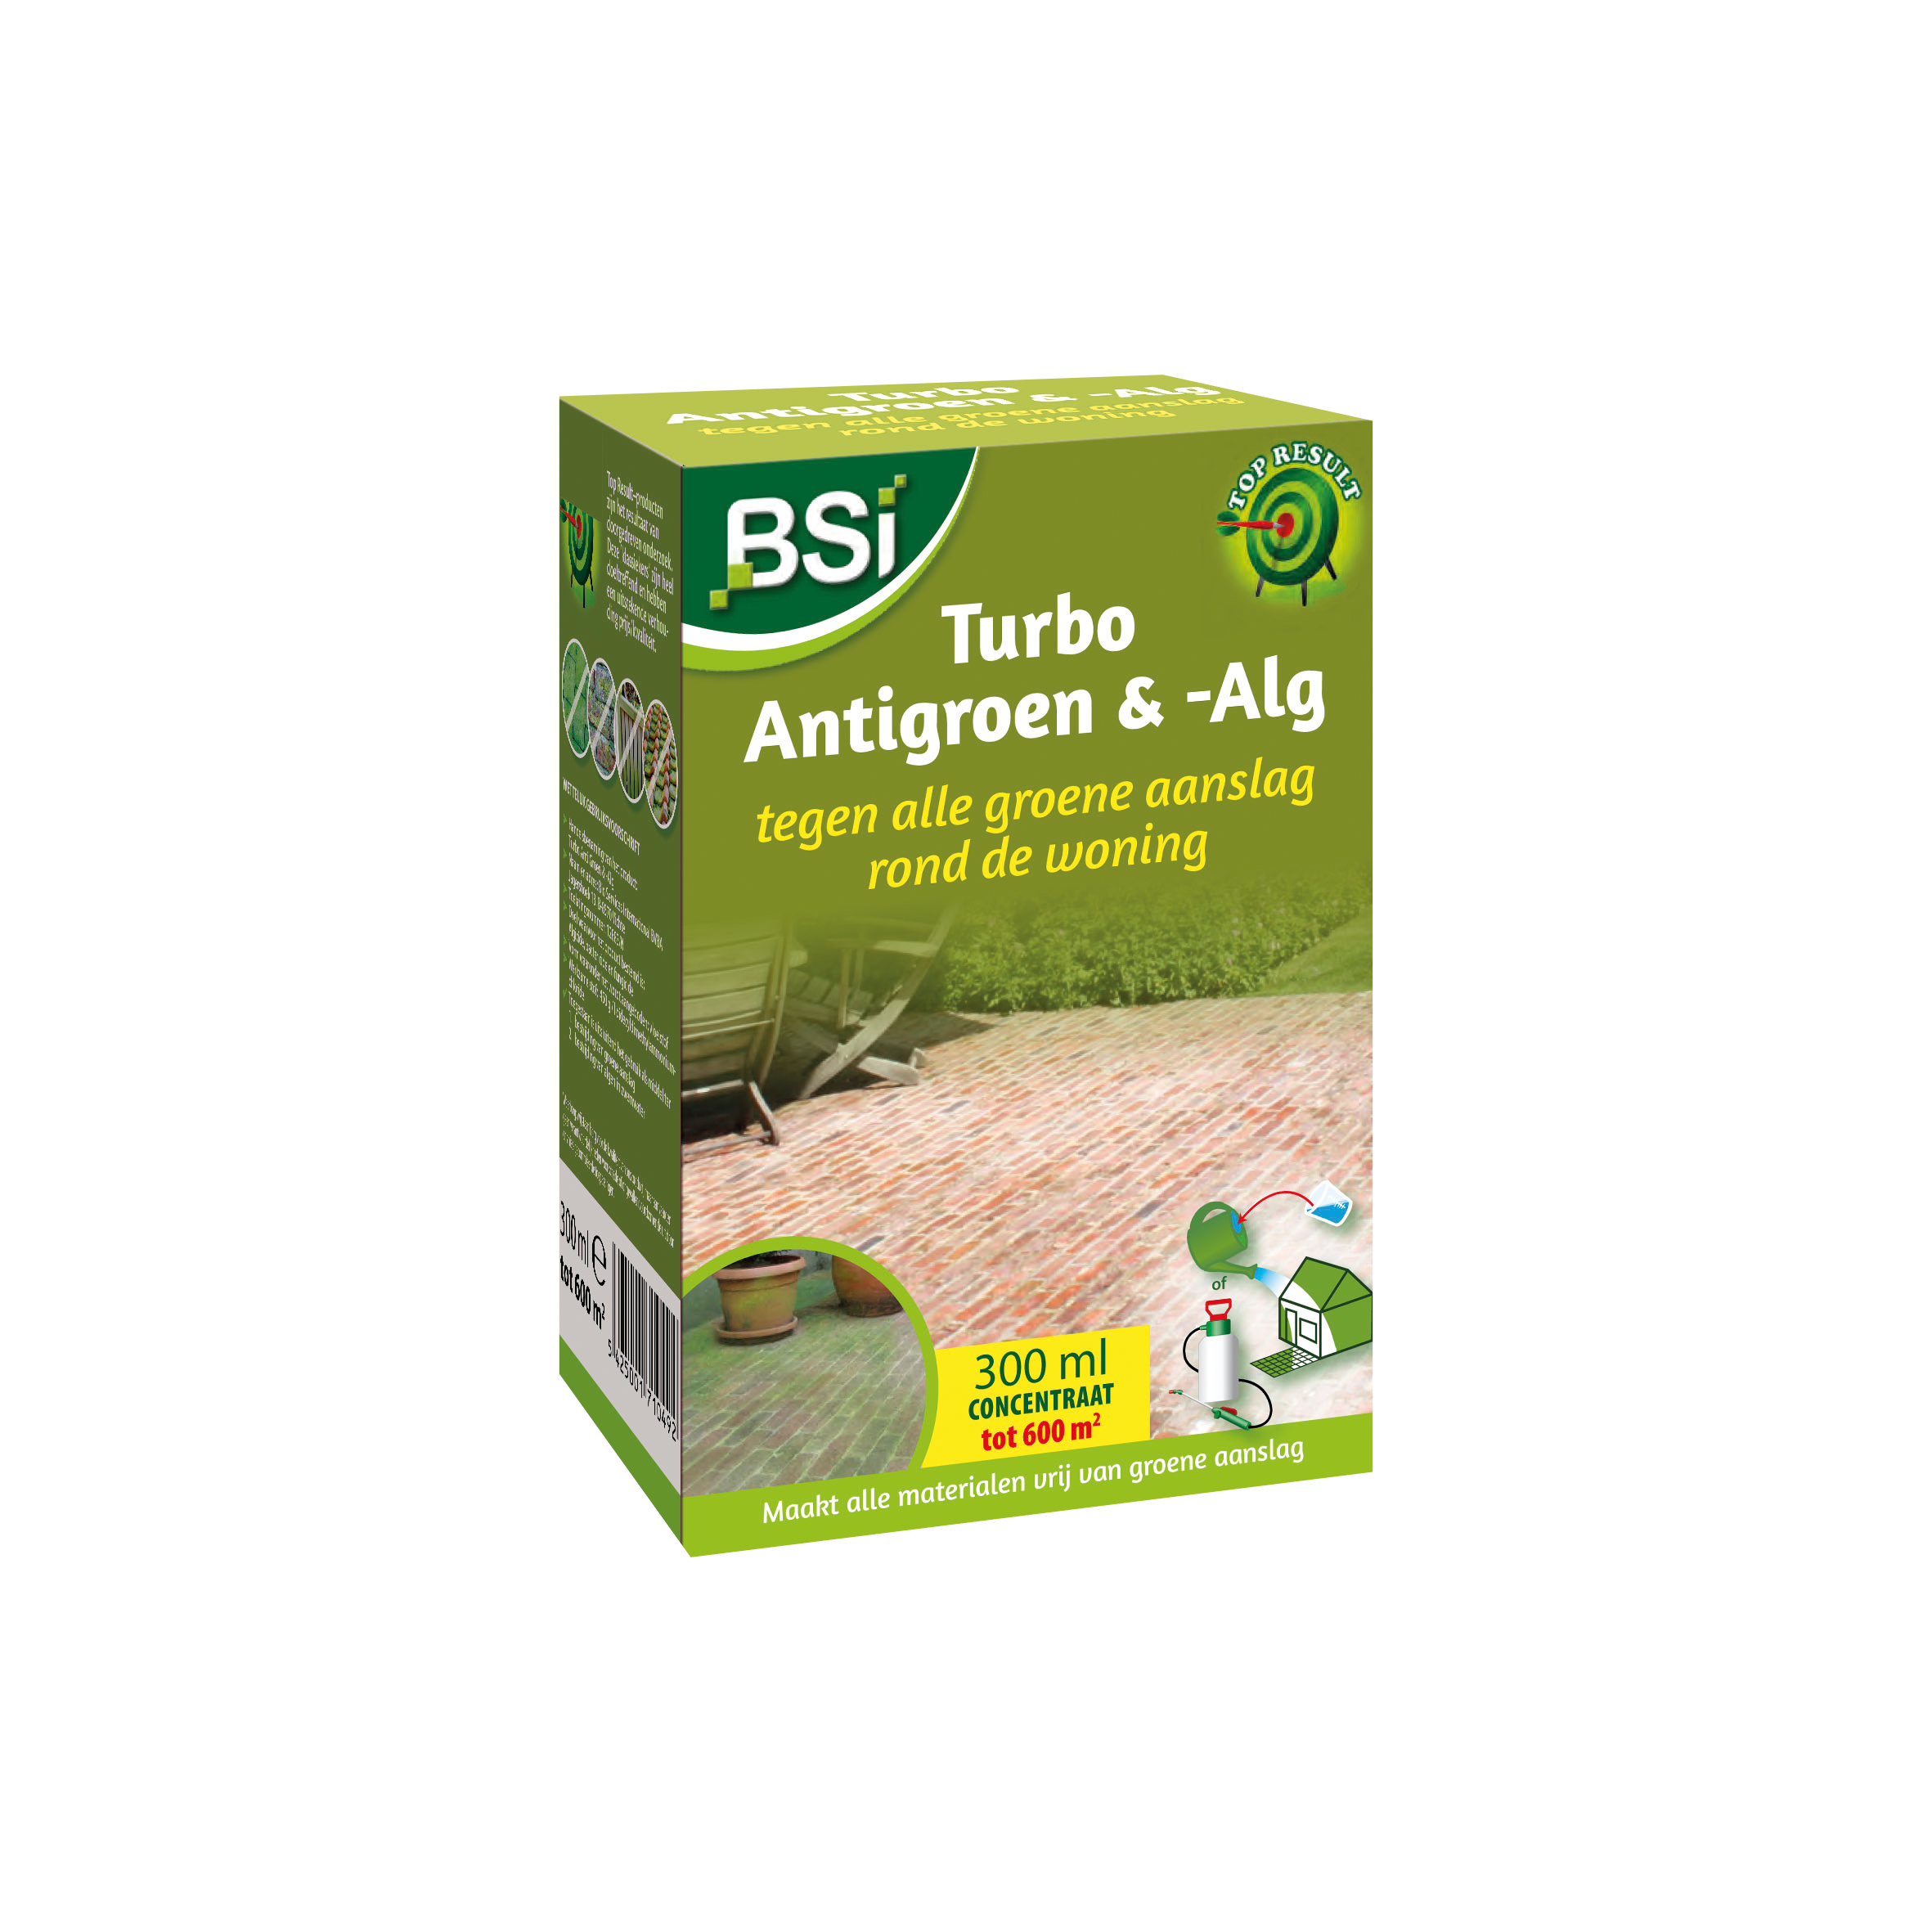 Turbo Anti-groen & -Alg 300 ml (NL) image